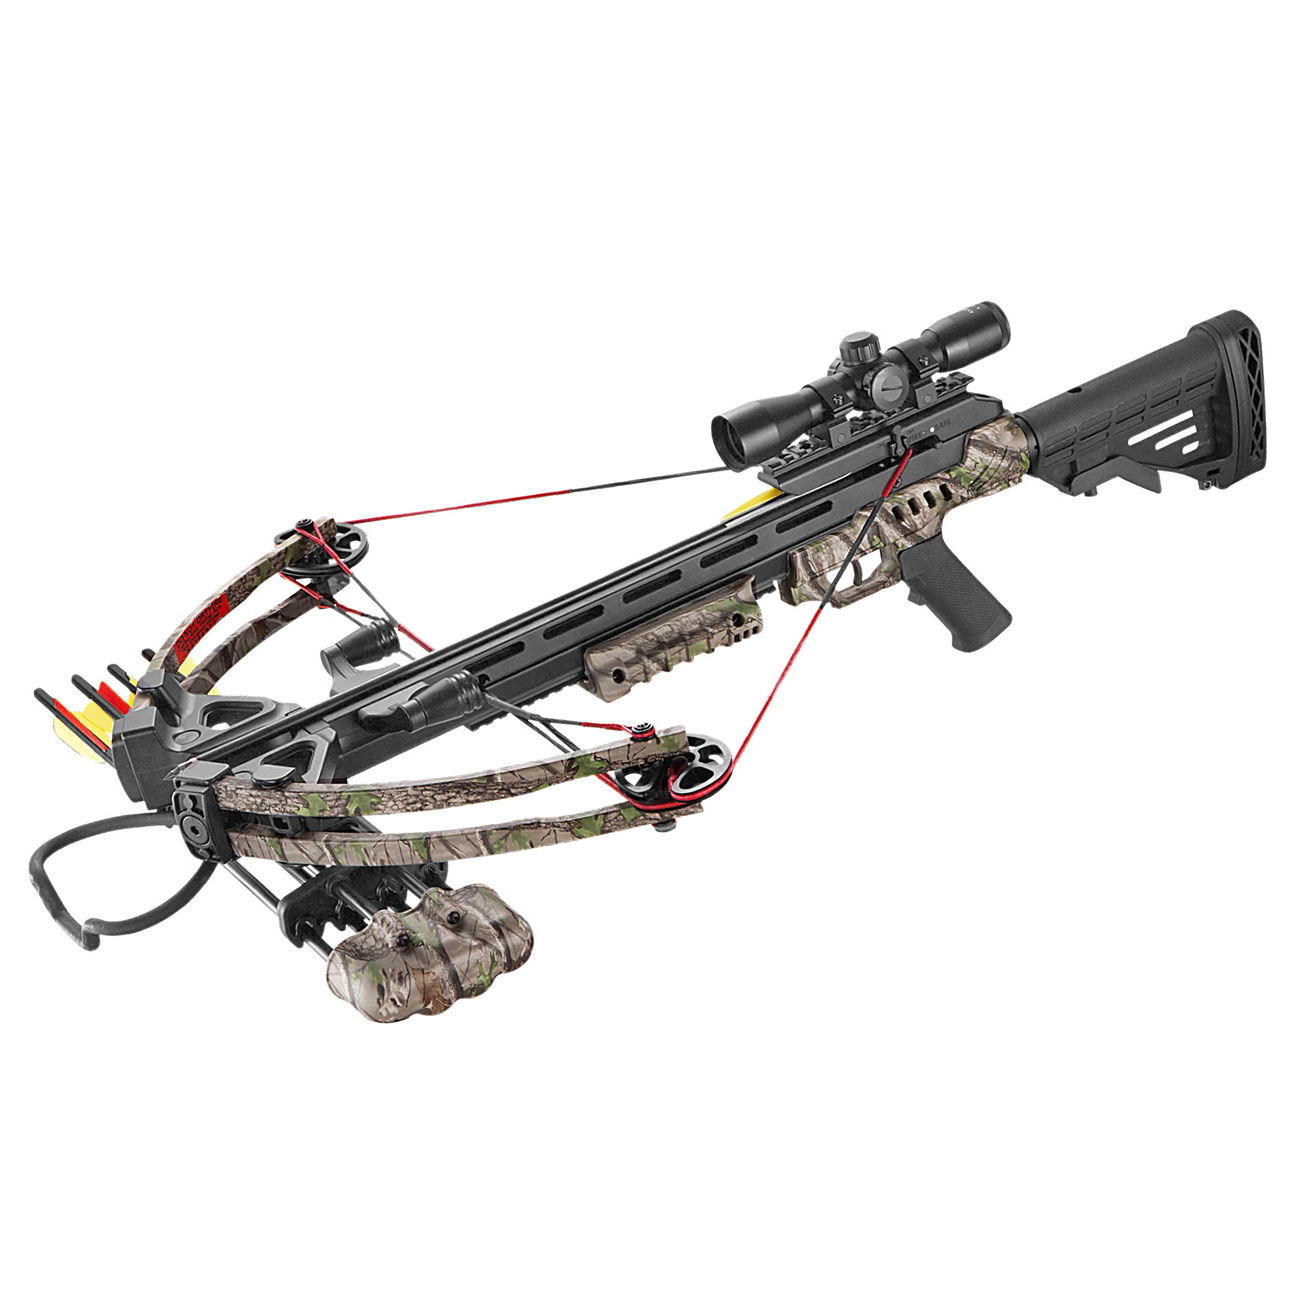 MK Compound Armbrust Falcon XB52 Komplettset 185 lbs Green Camo 0